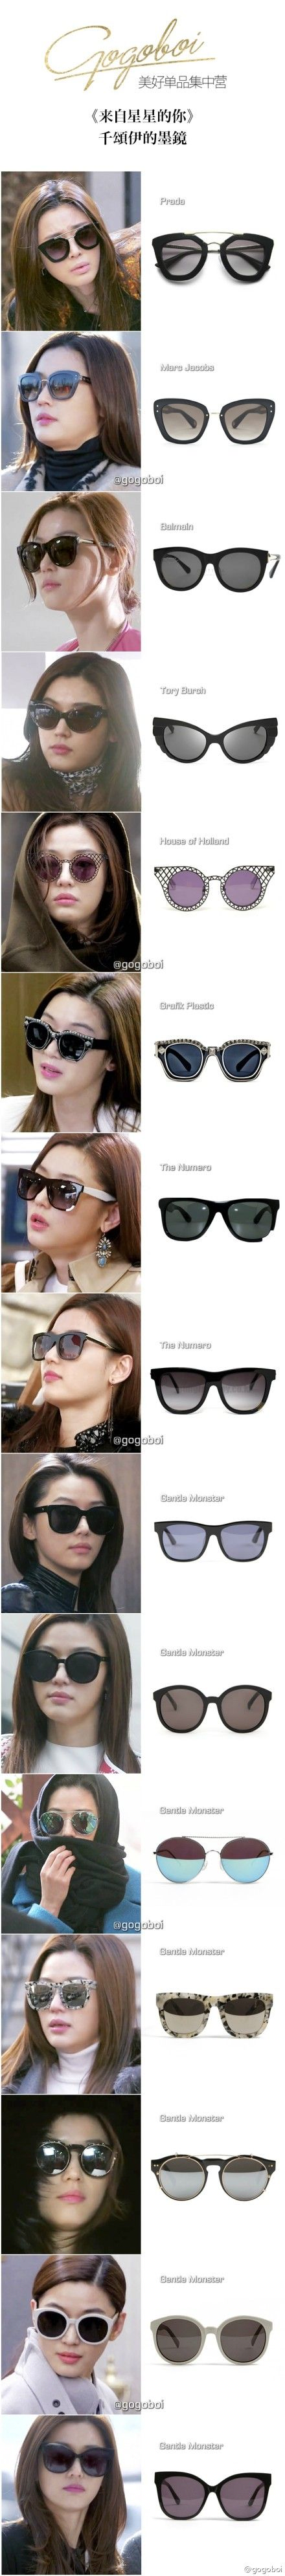 the list of sunglasses she wore in the drama My Love From Another Star